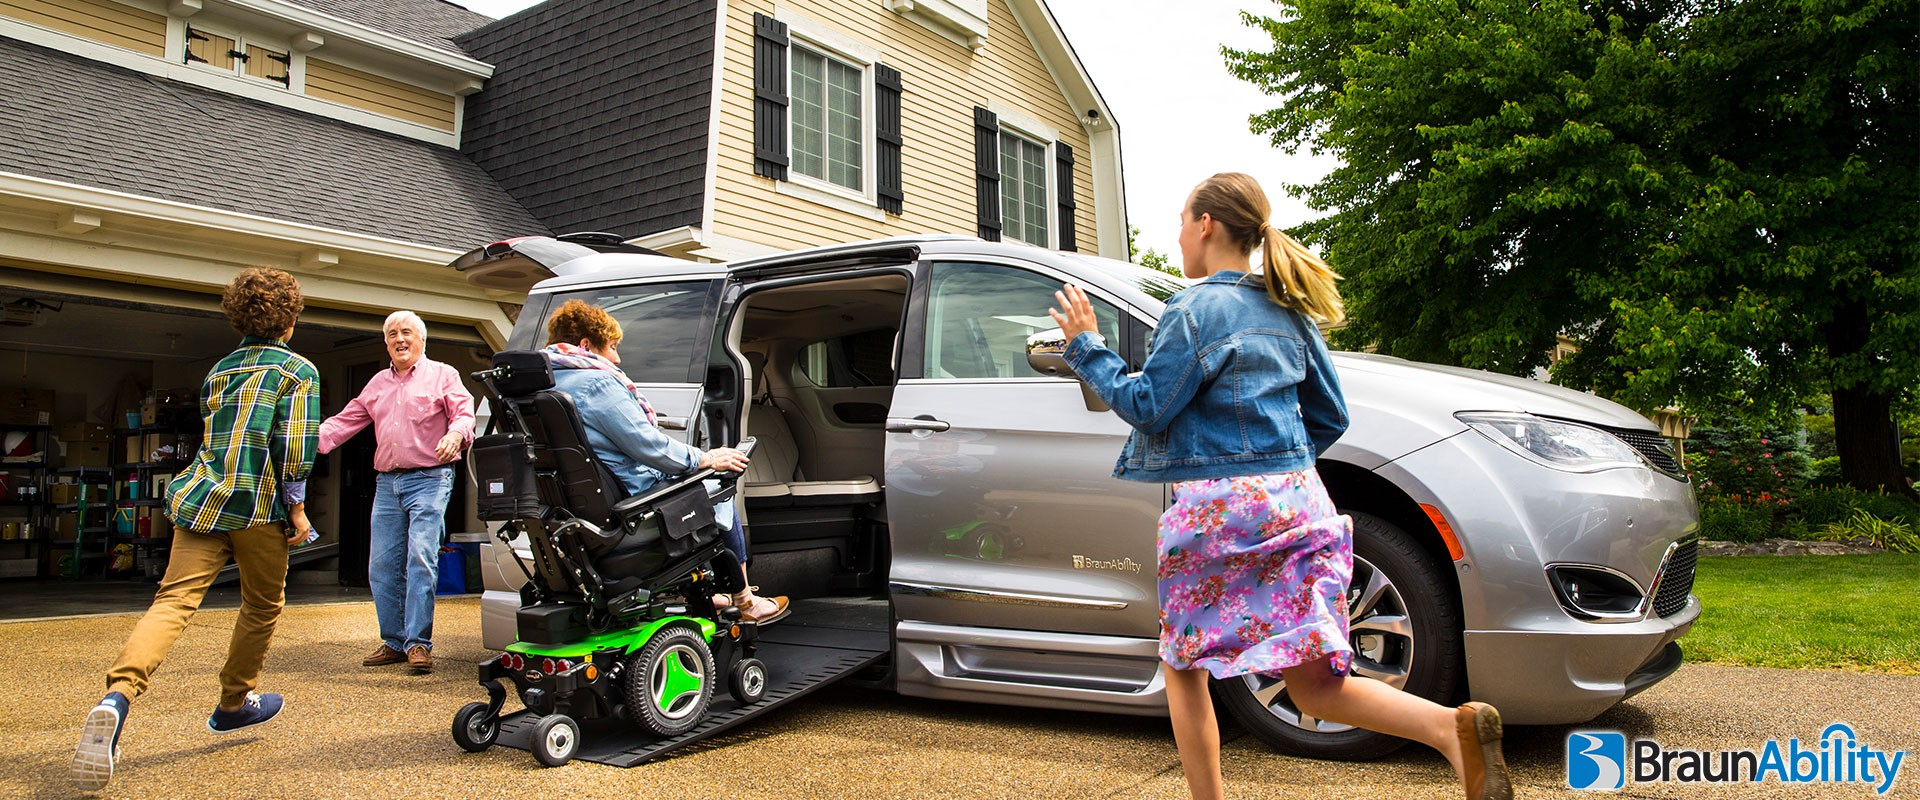 BraunAbility Wheelchair Vans For Sale The Gulf Coast